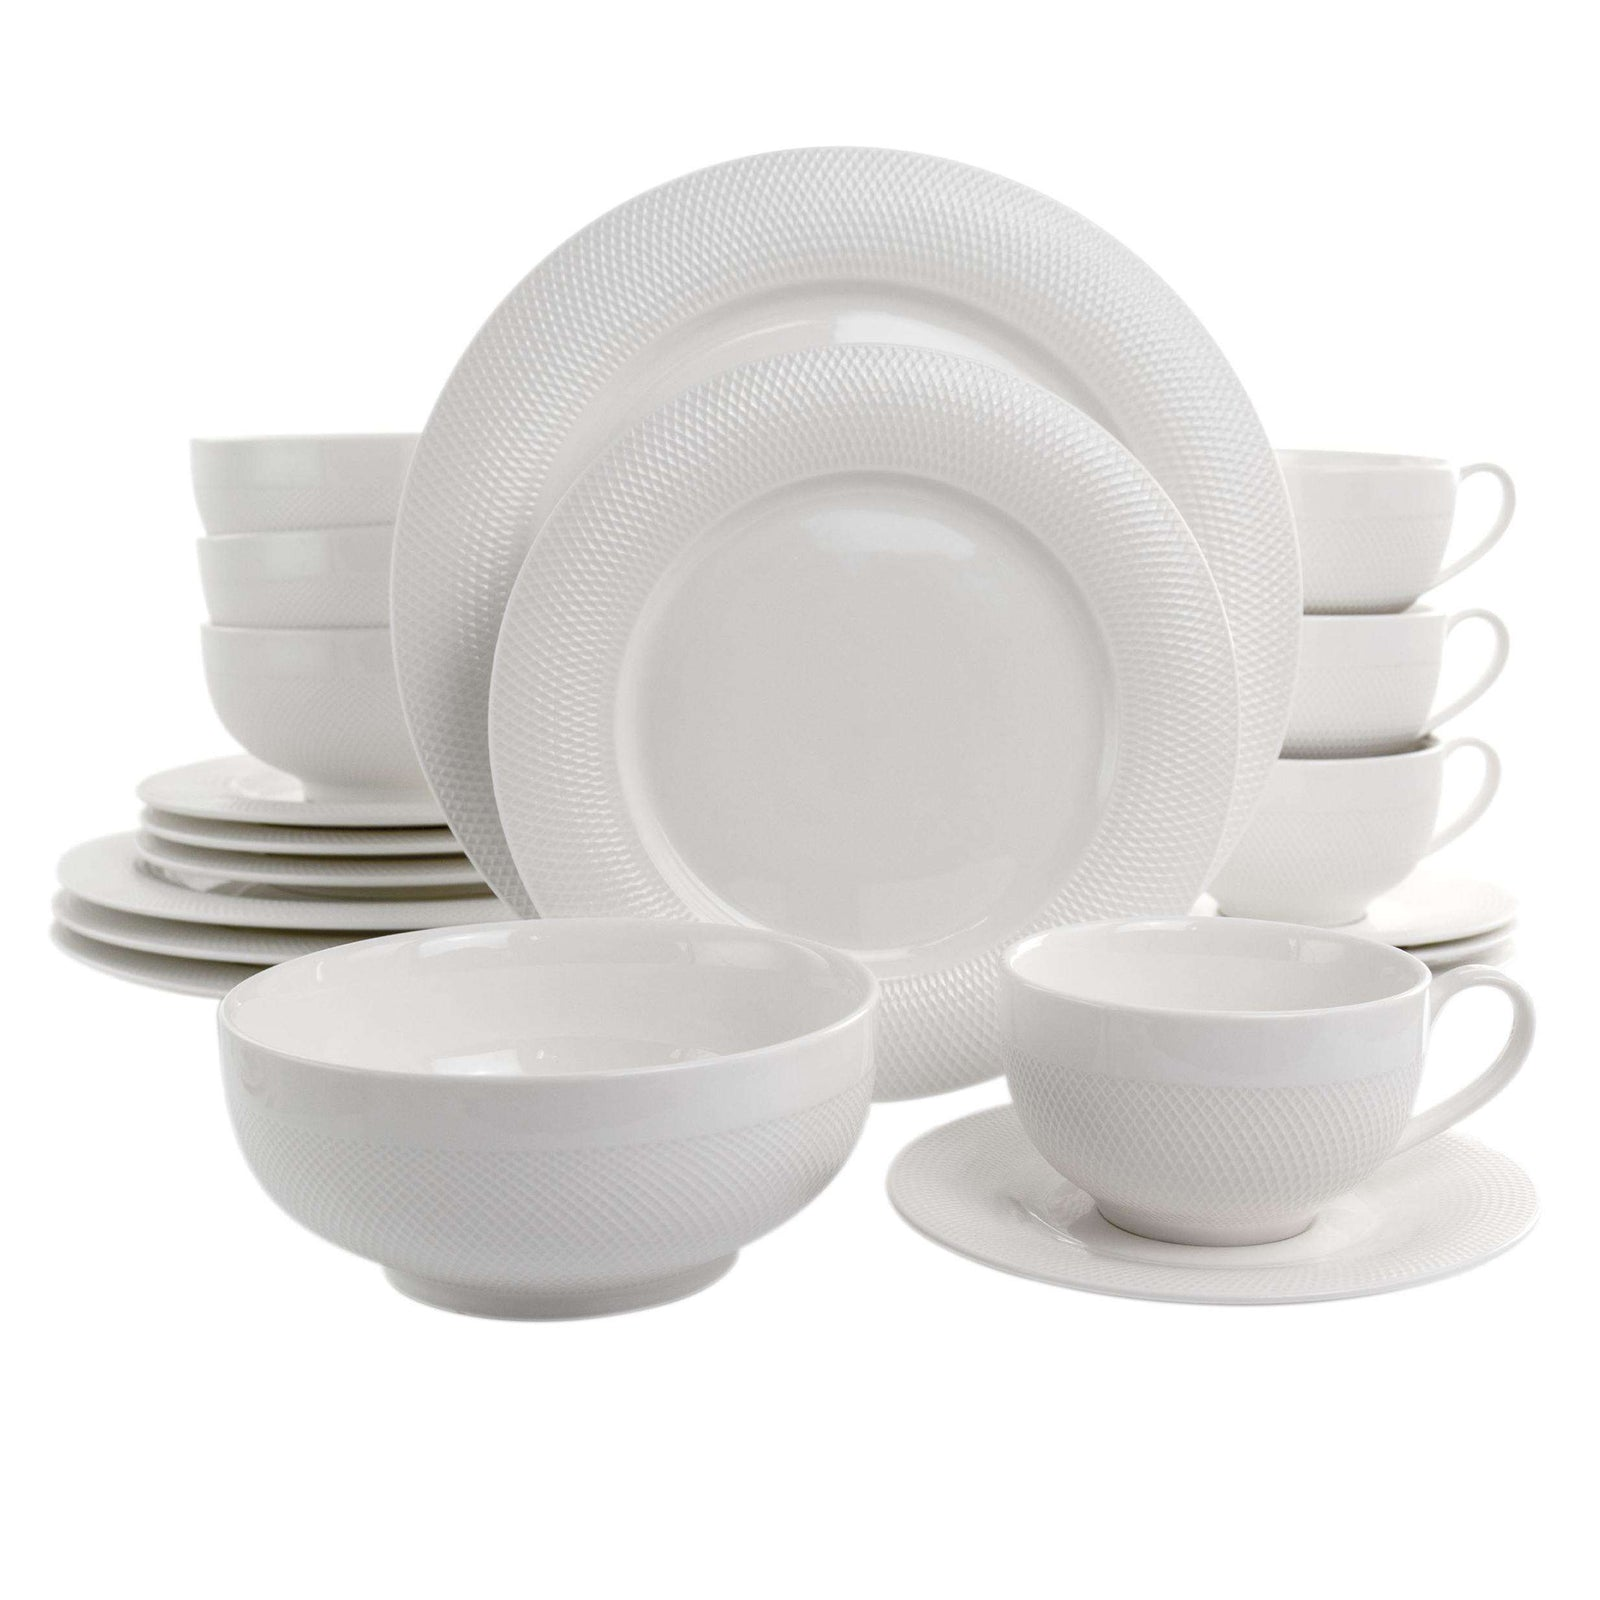 Elama Dione 20 Piece Porcelain Dinnerware Set in White